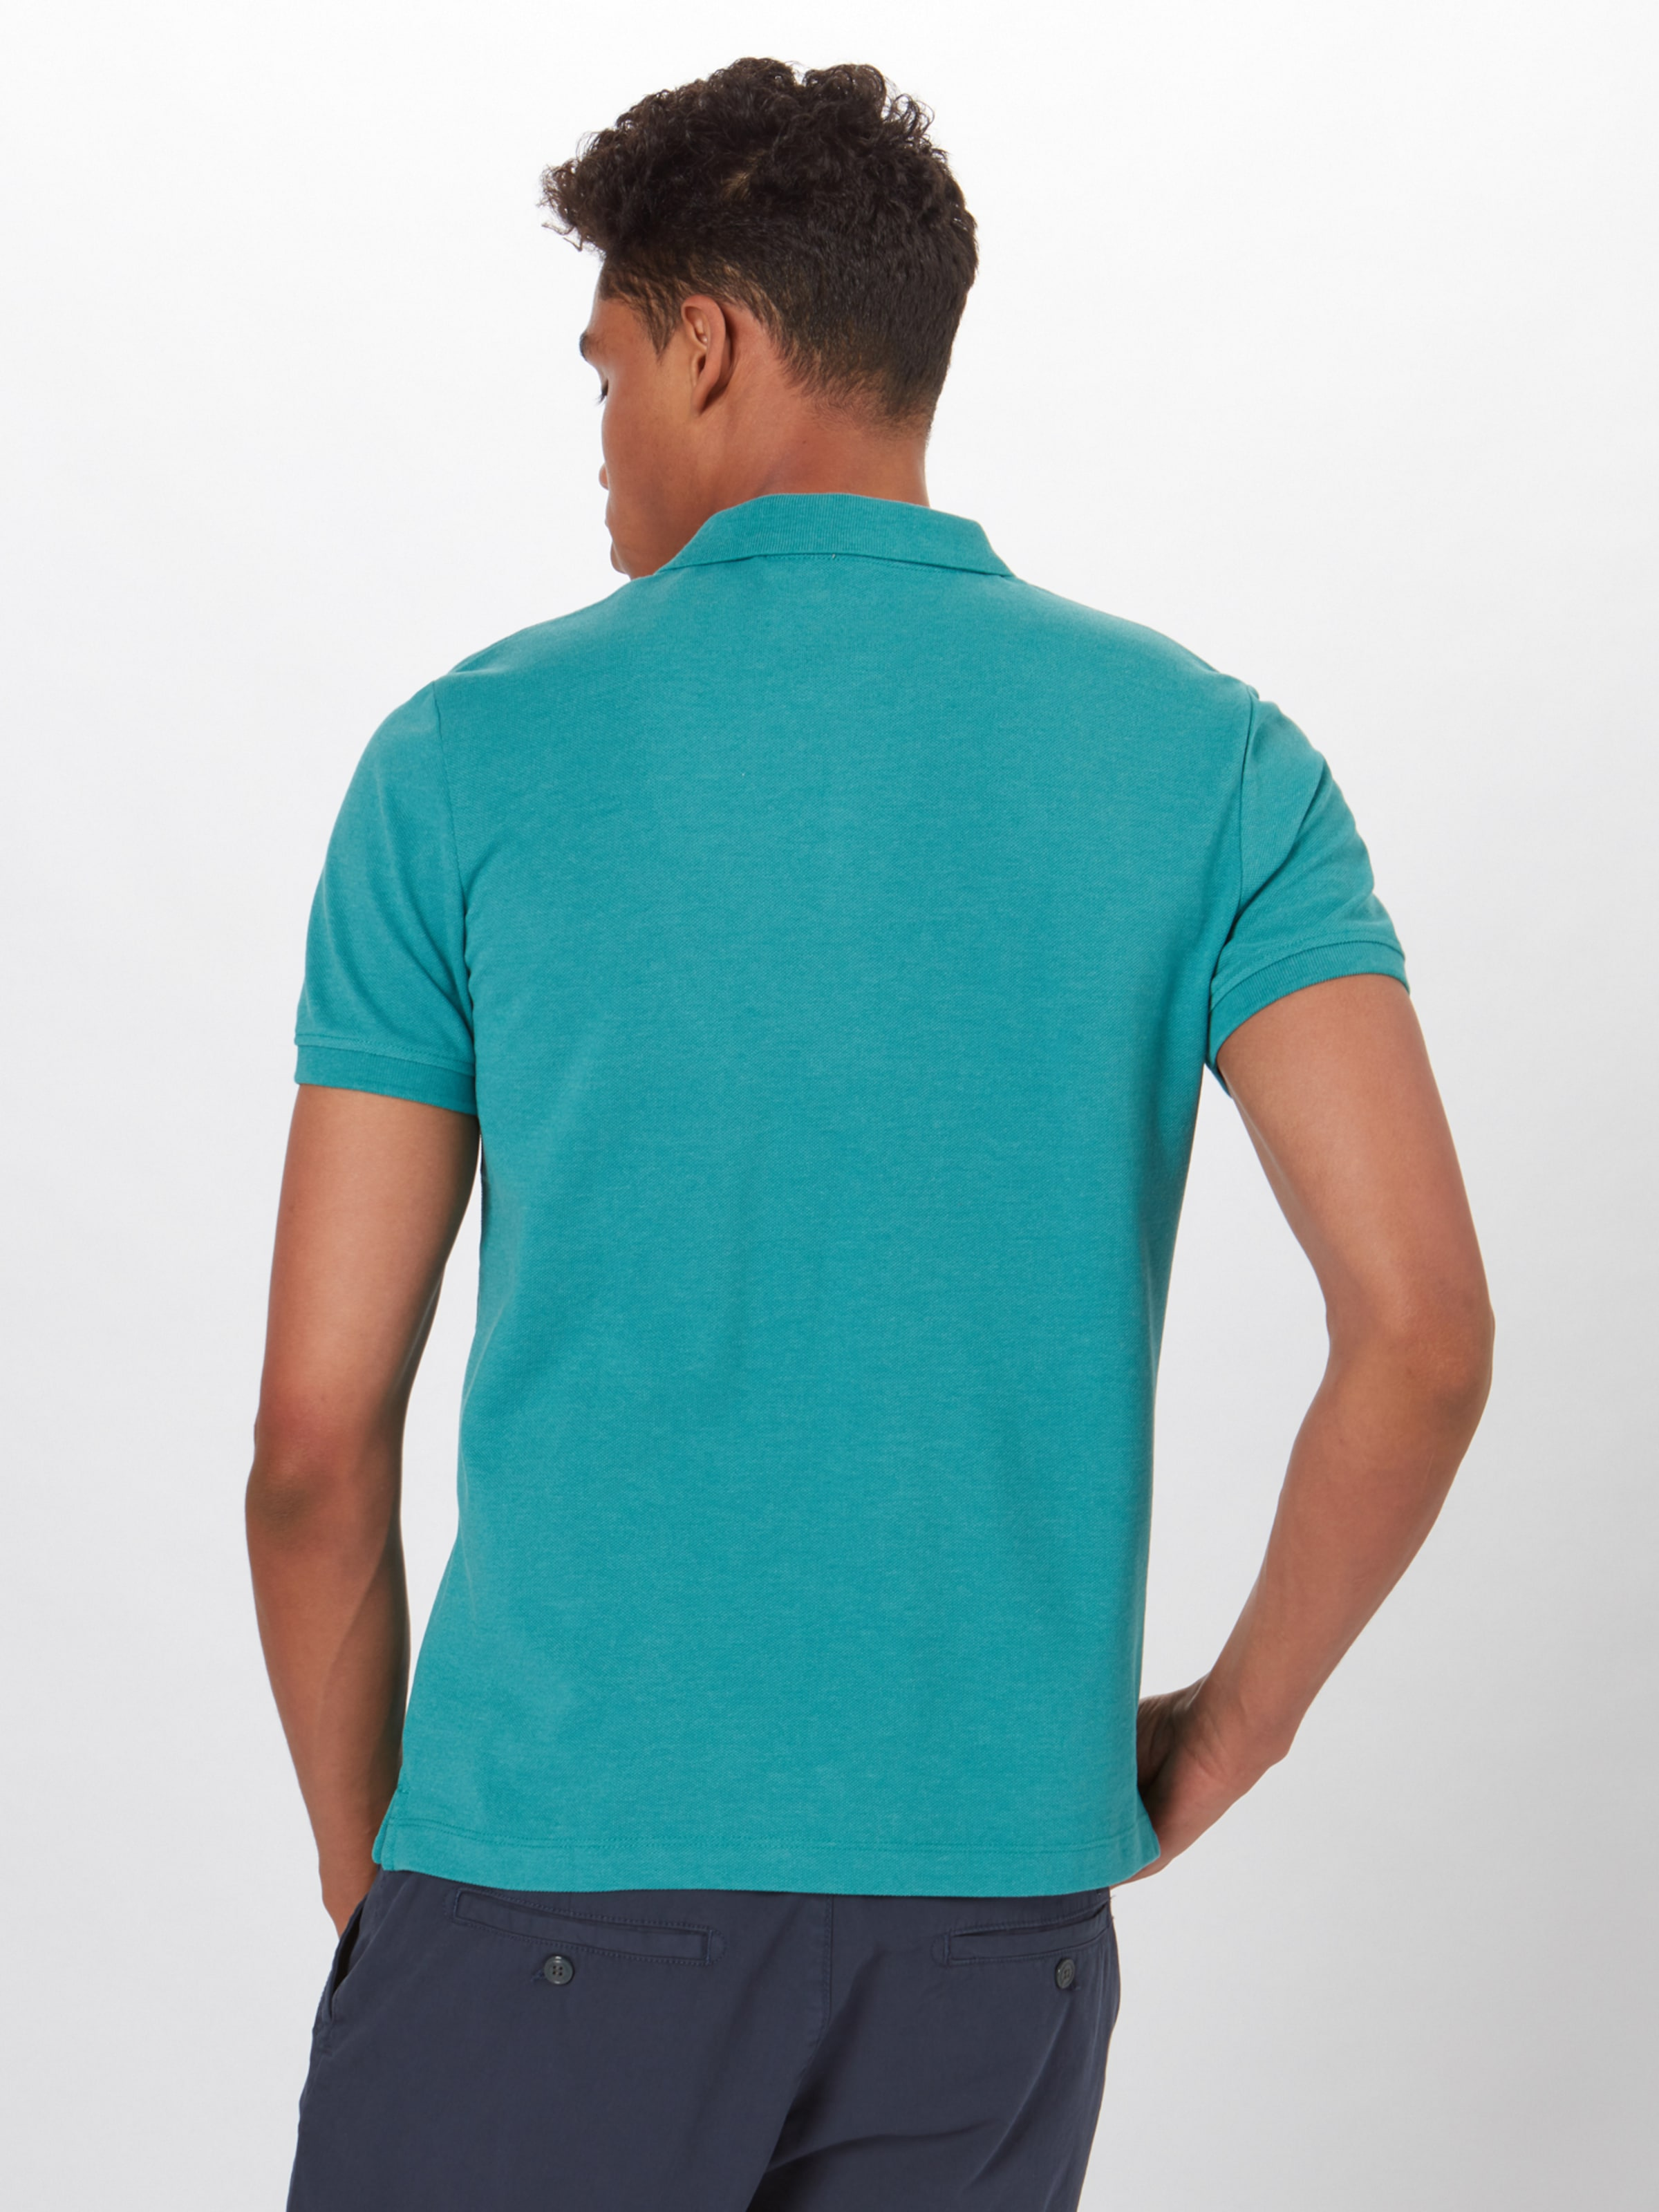 In Aqua Poloshirt Label oliver Red S KlJc1F